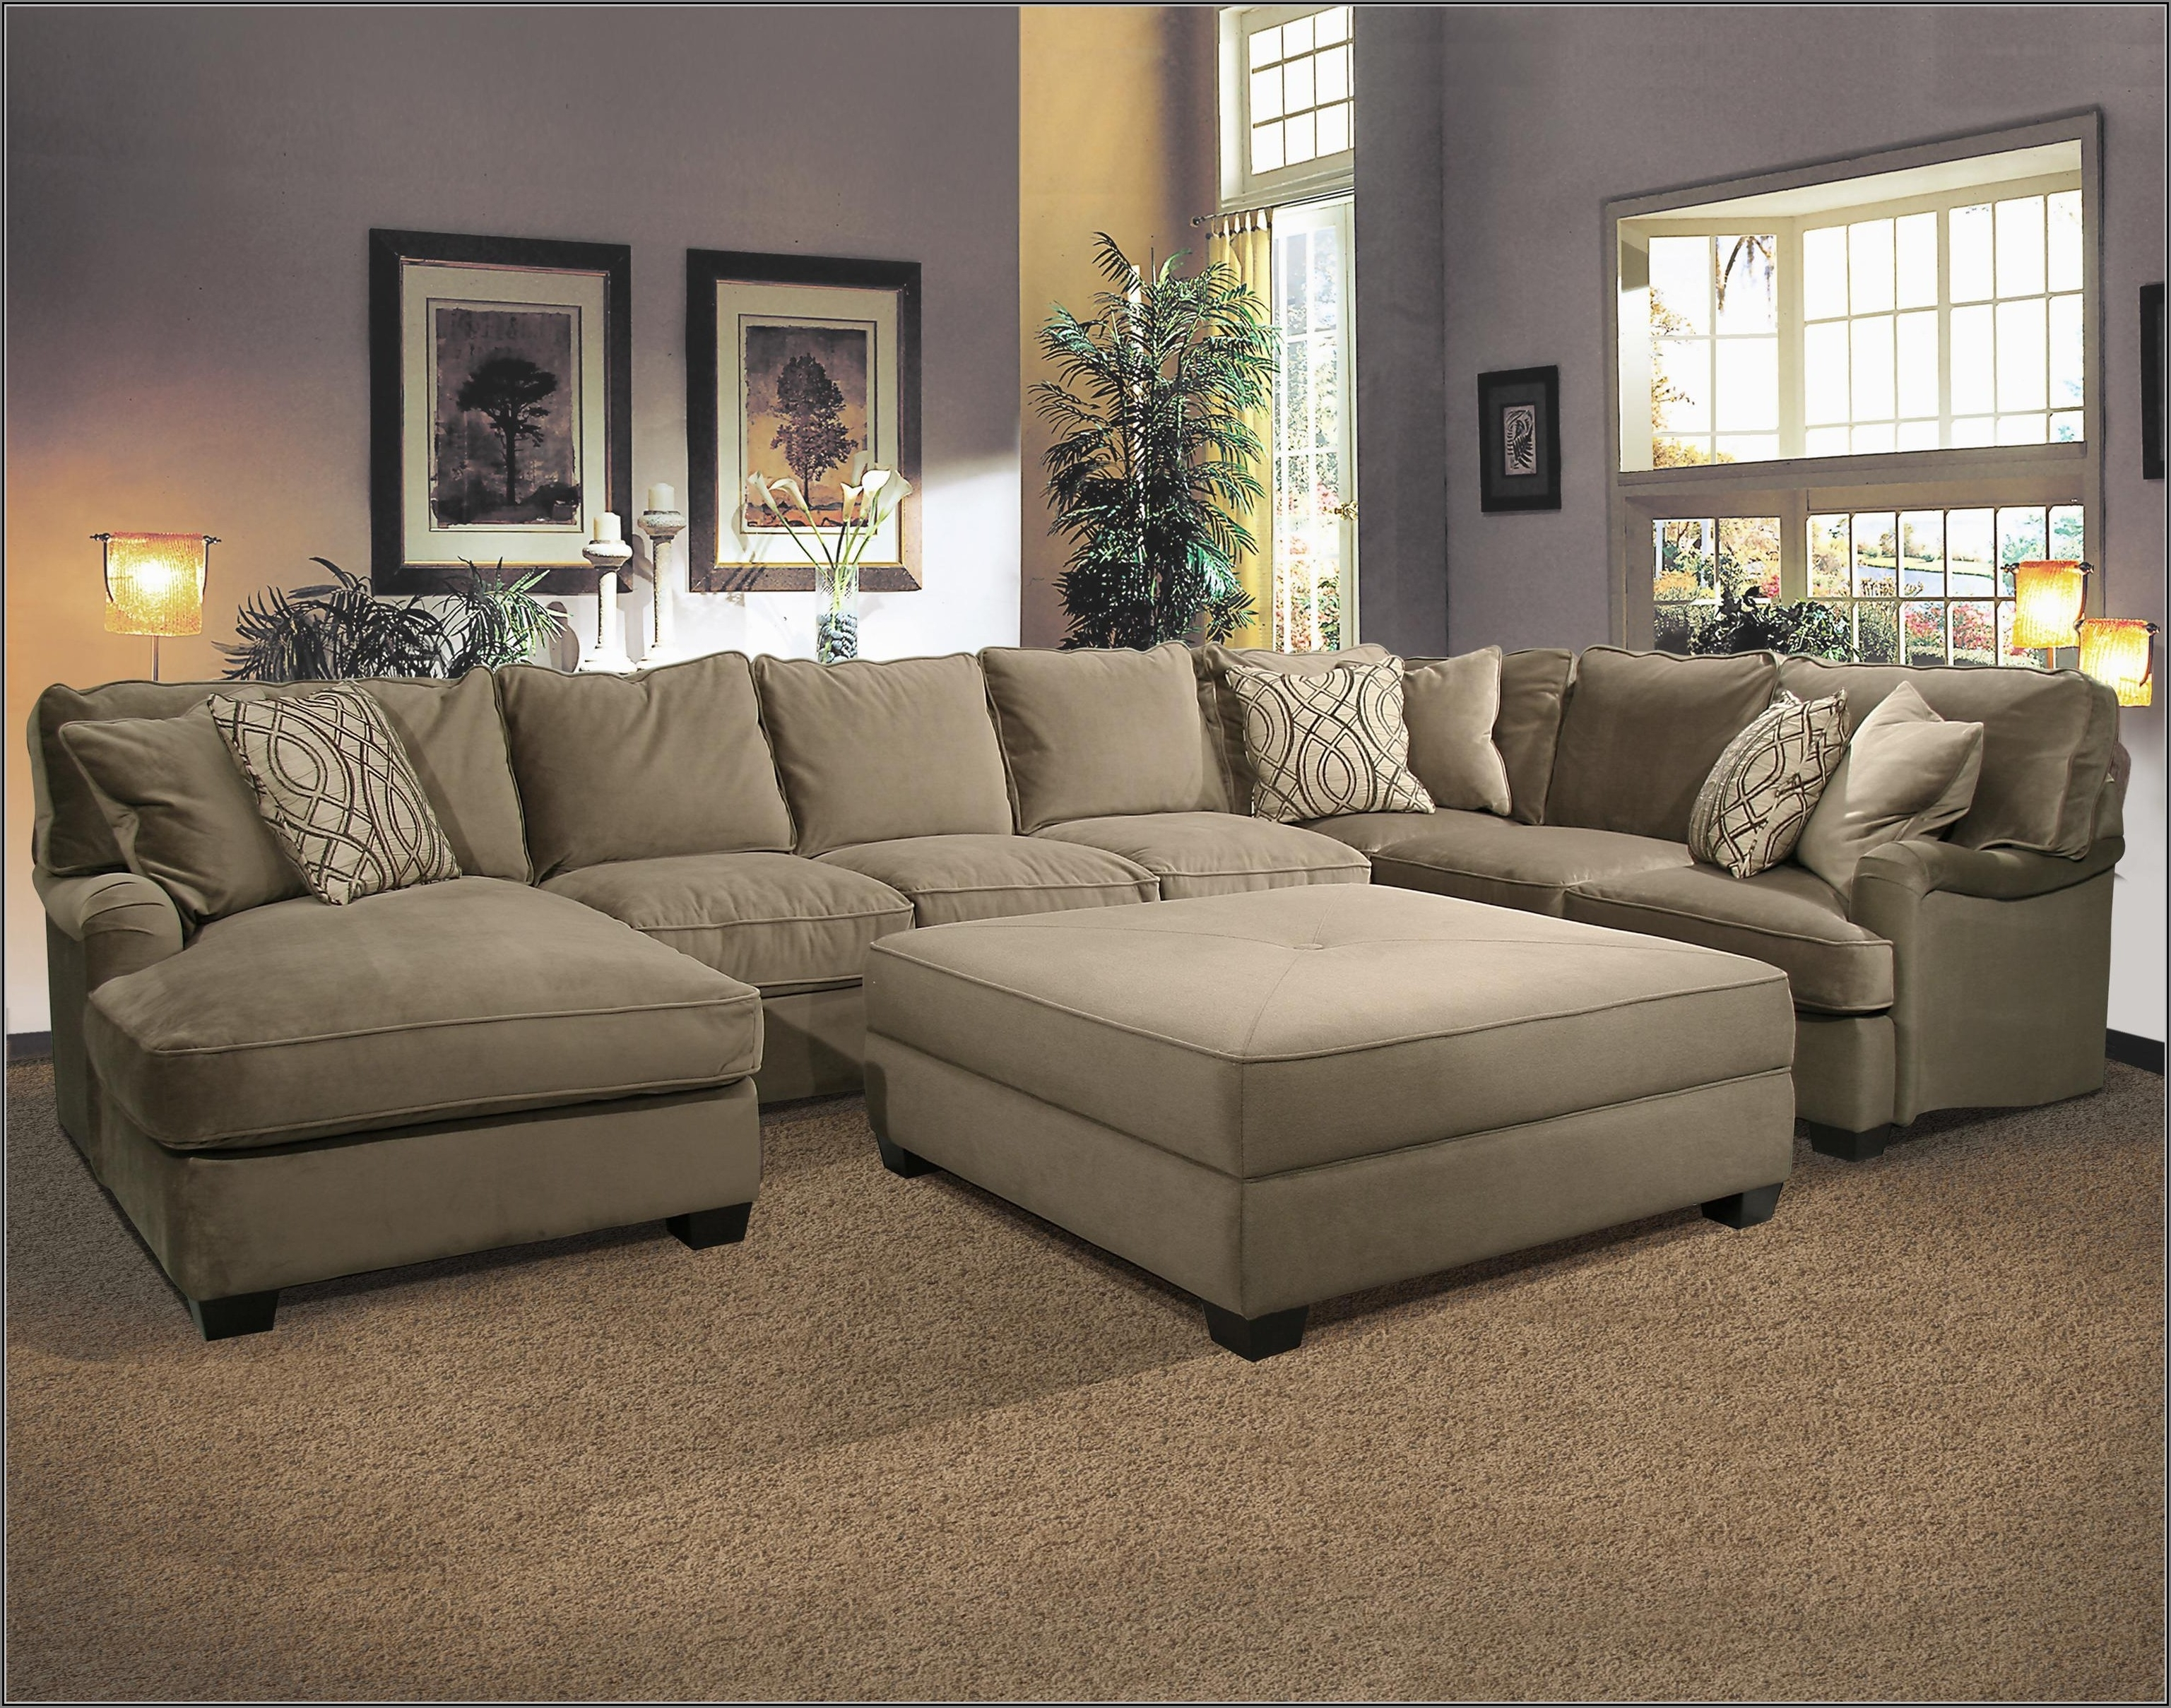 Fashionable Sectional Couches With Large Ottoman Throughout Sectional Sofa With Large Ottoman Hotelsbacau Com Intended For (View 2 of 20)